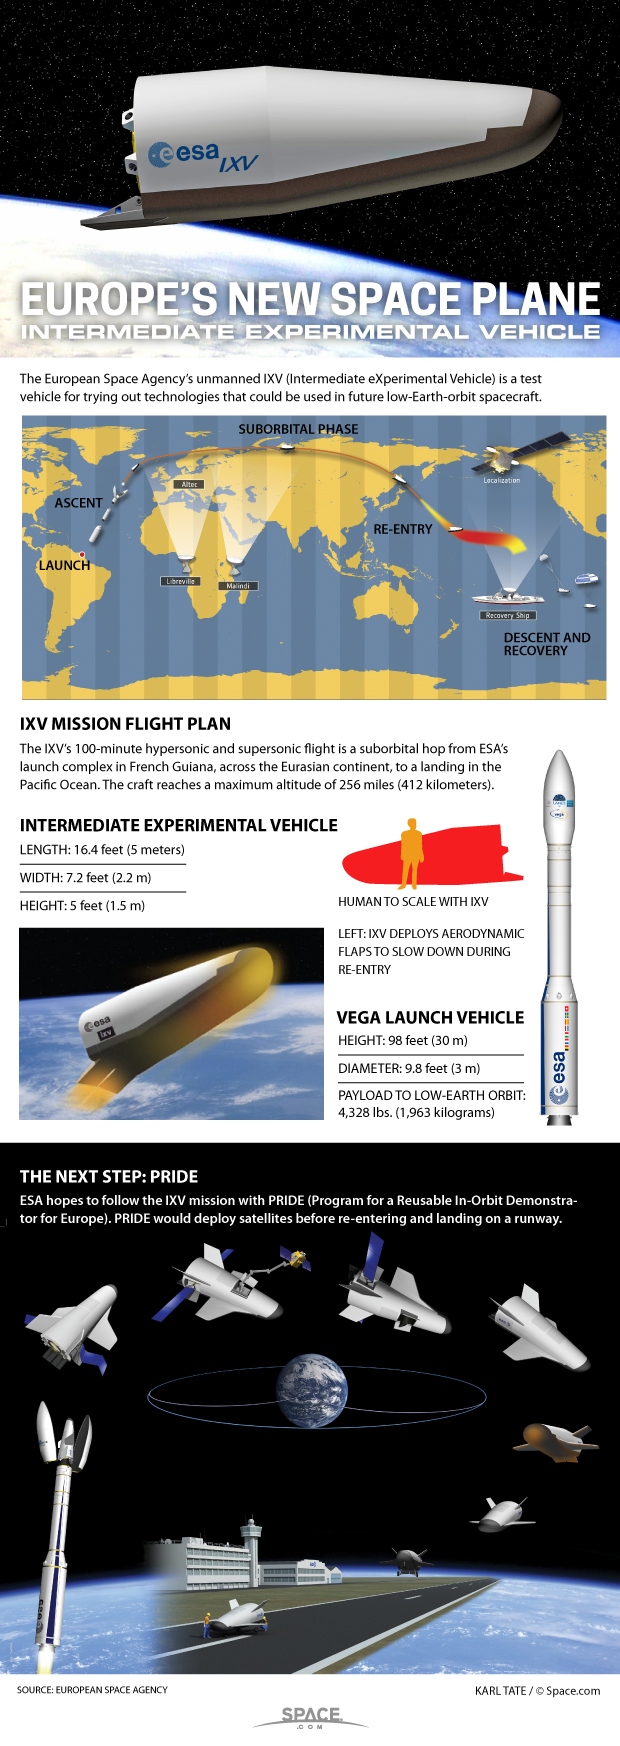 Diagrams show new experimental space plane.